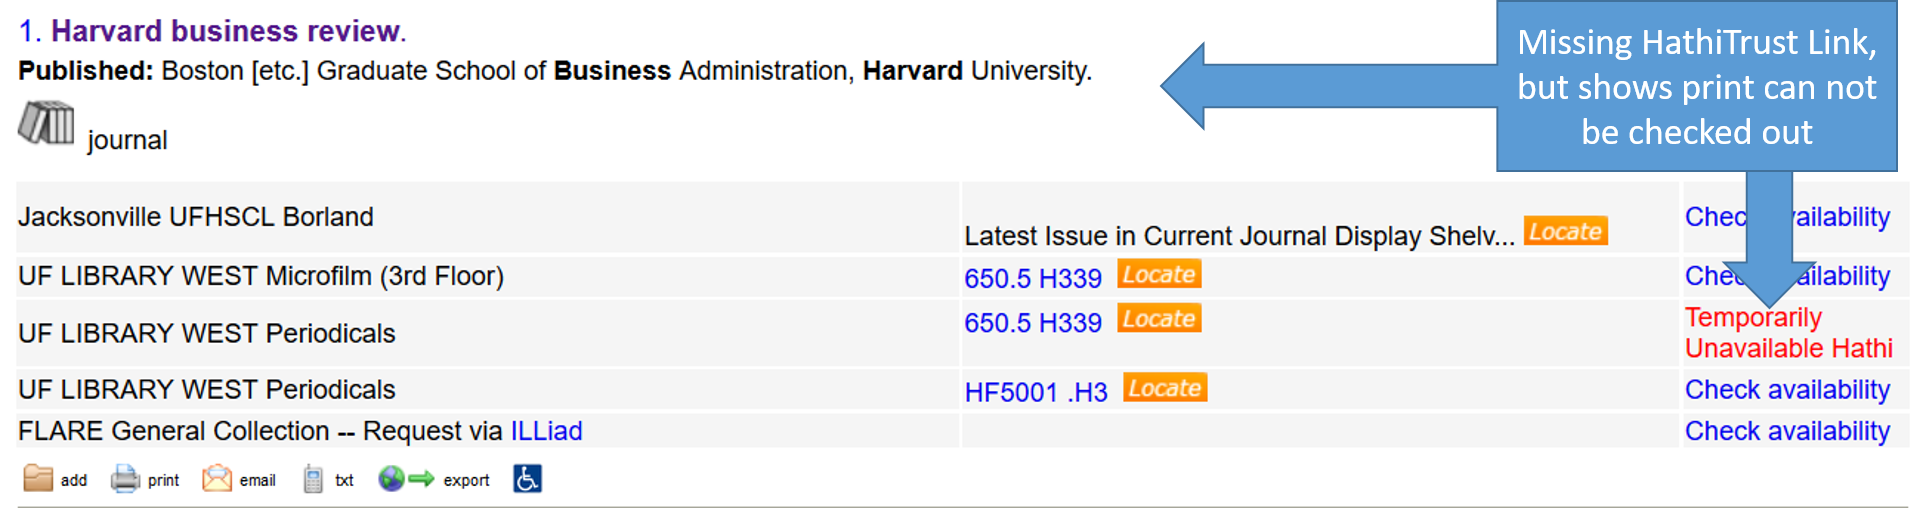 image of journal result in UF catalog, missing hathi link, but holdings indicate available via HathiTrust